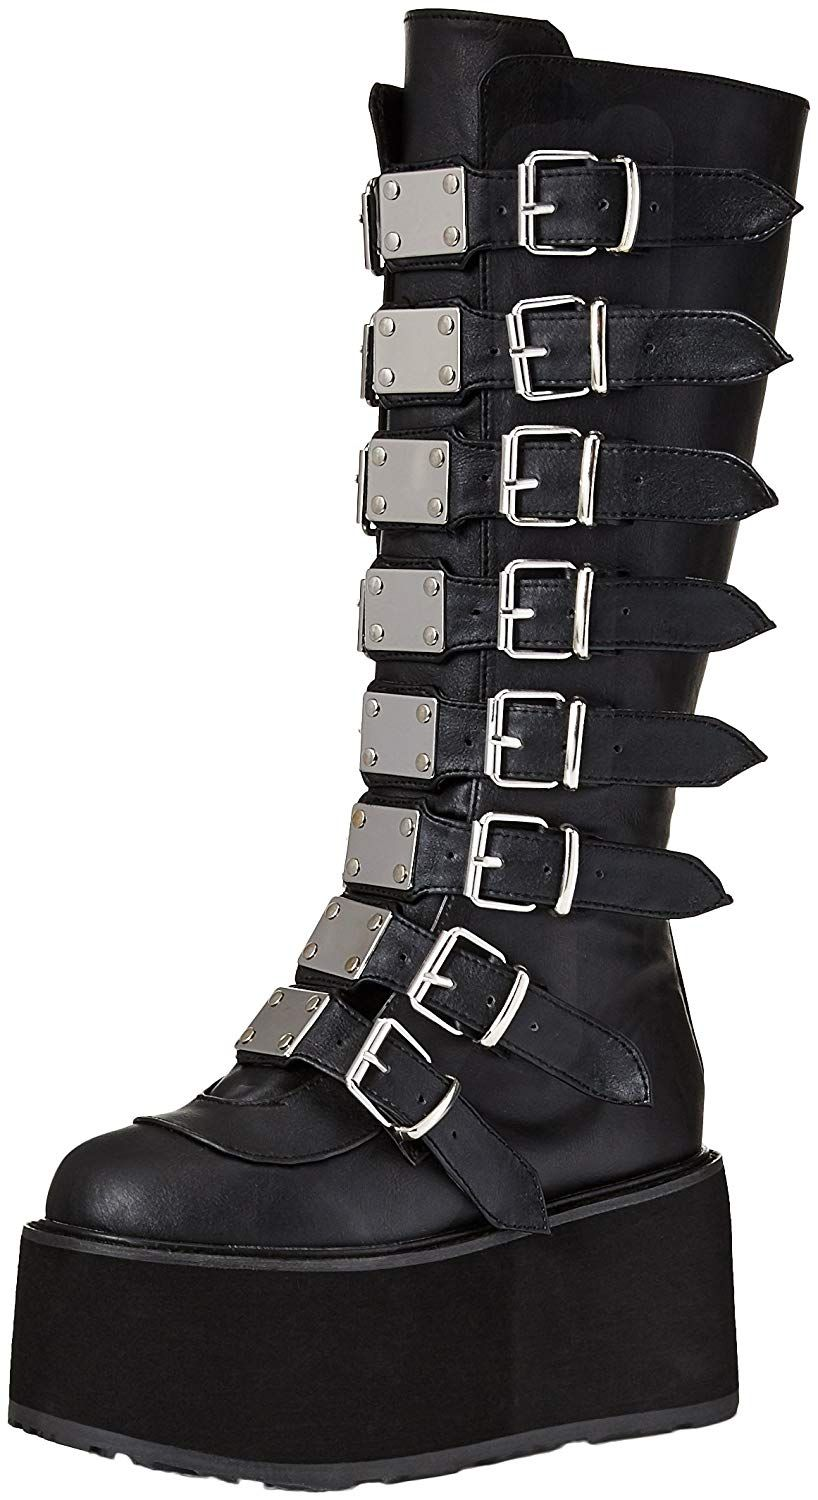 691716d99f0 Demonia Women's Damned-318 Knee High Boot * Hope that you actually ...